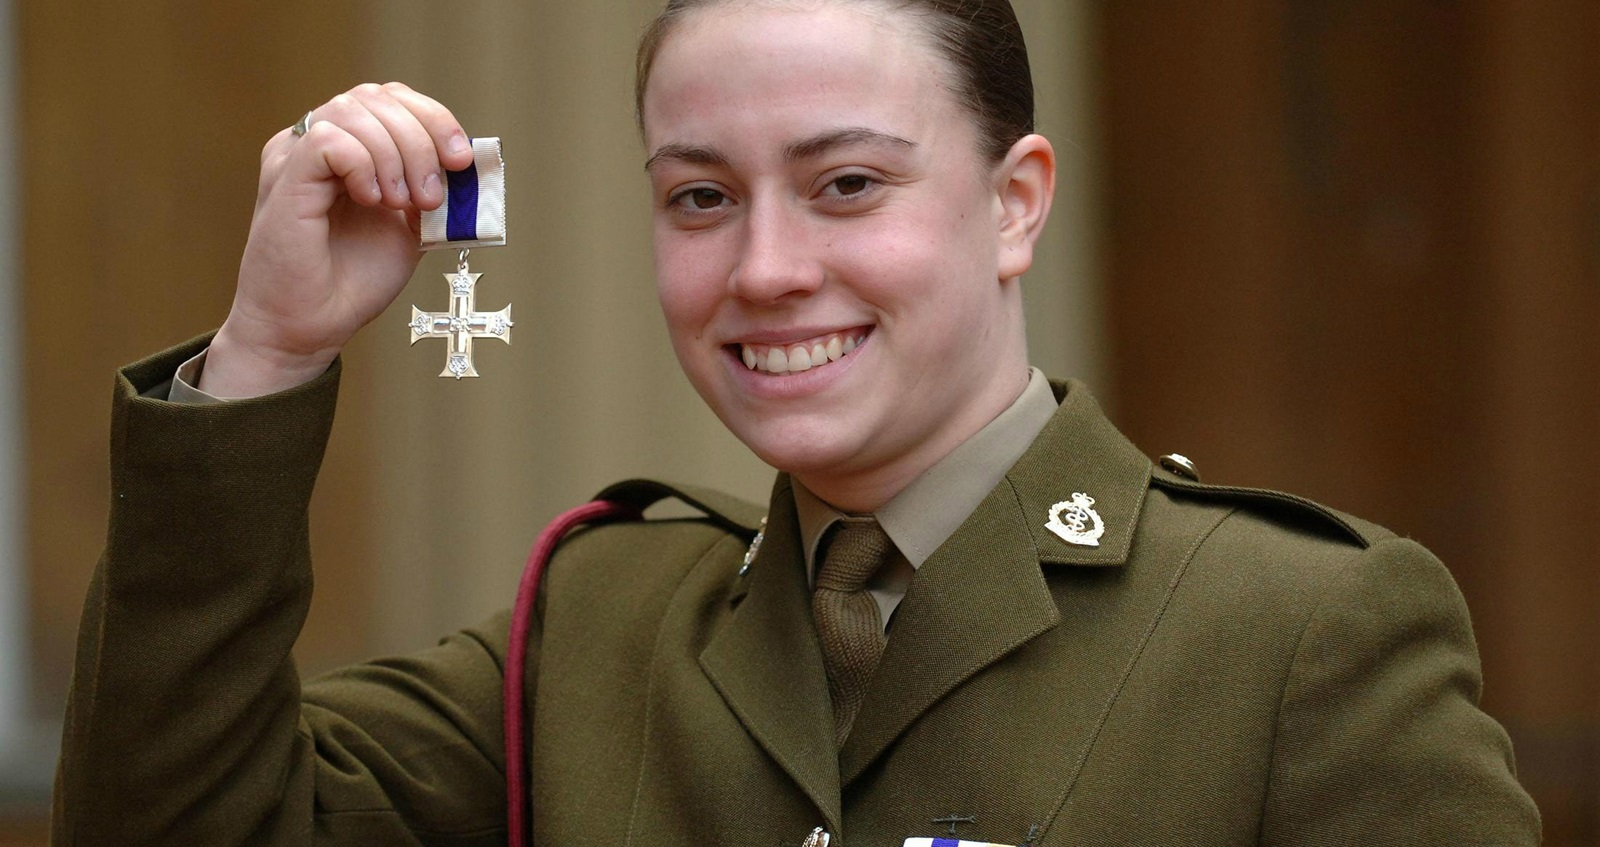 Michelle Norris was the first woman to receive the Military Cross